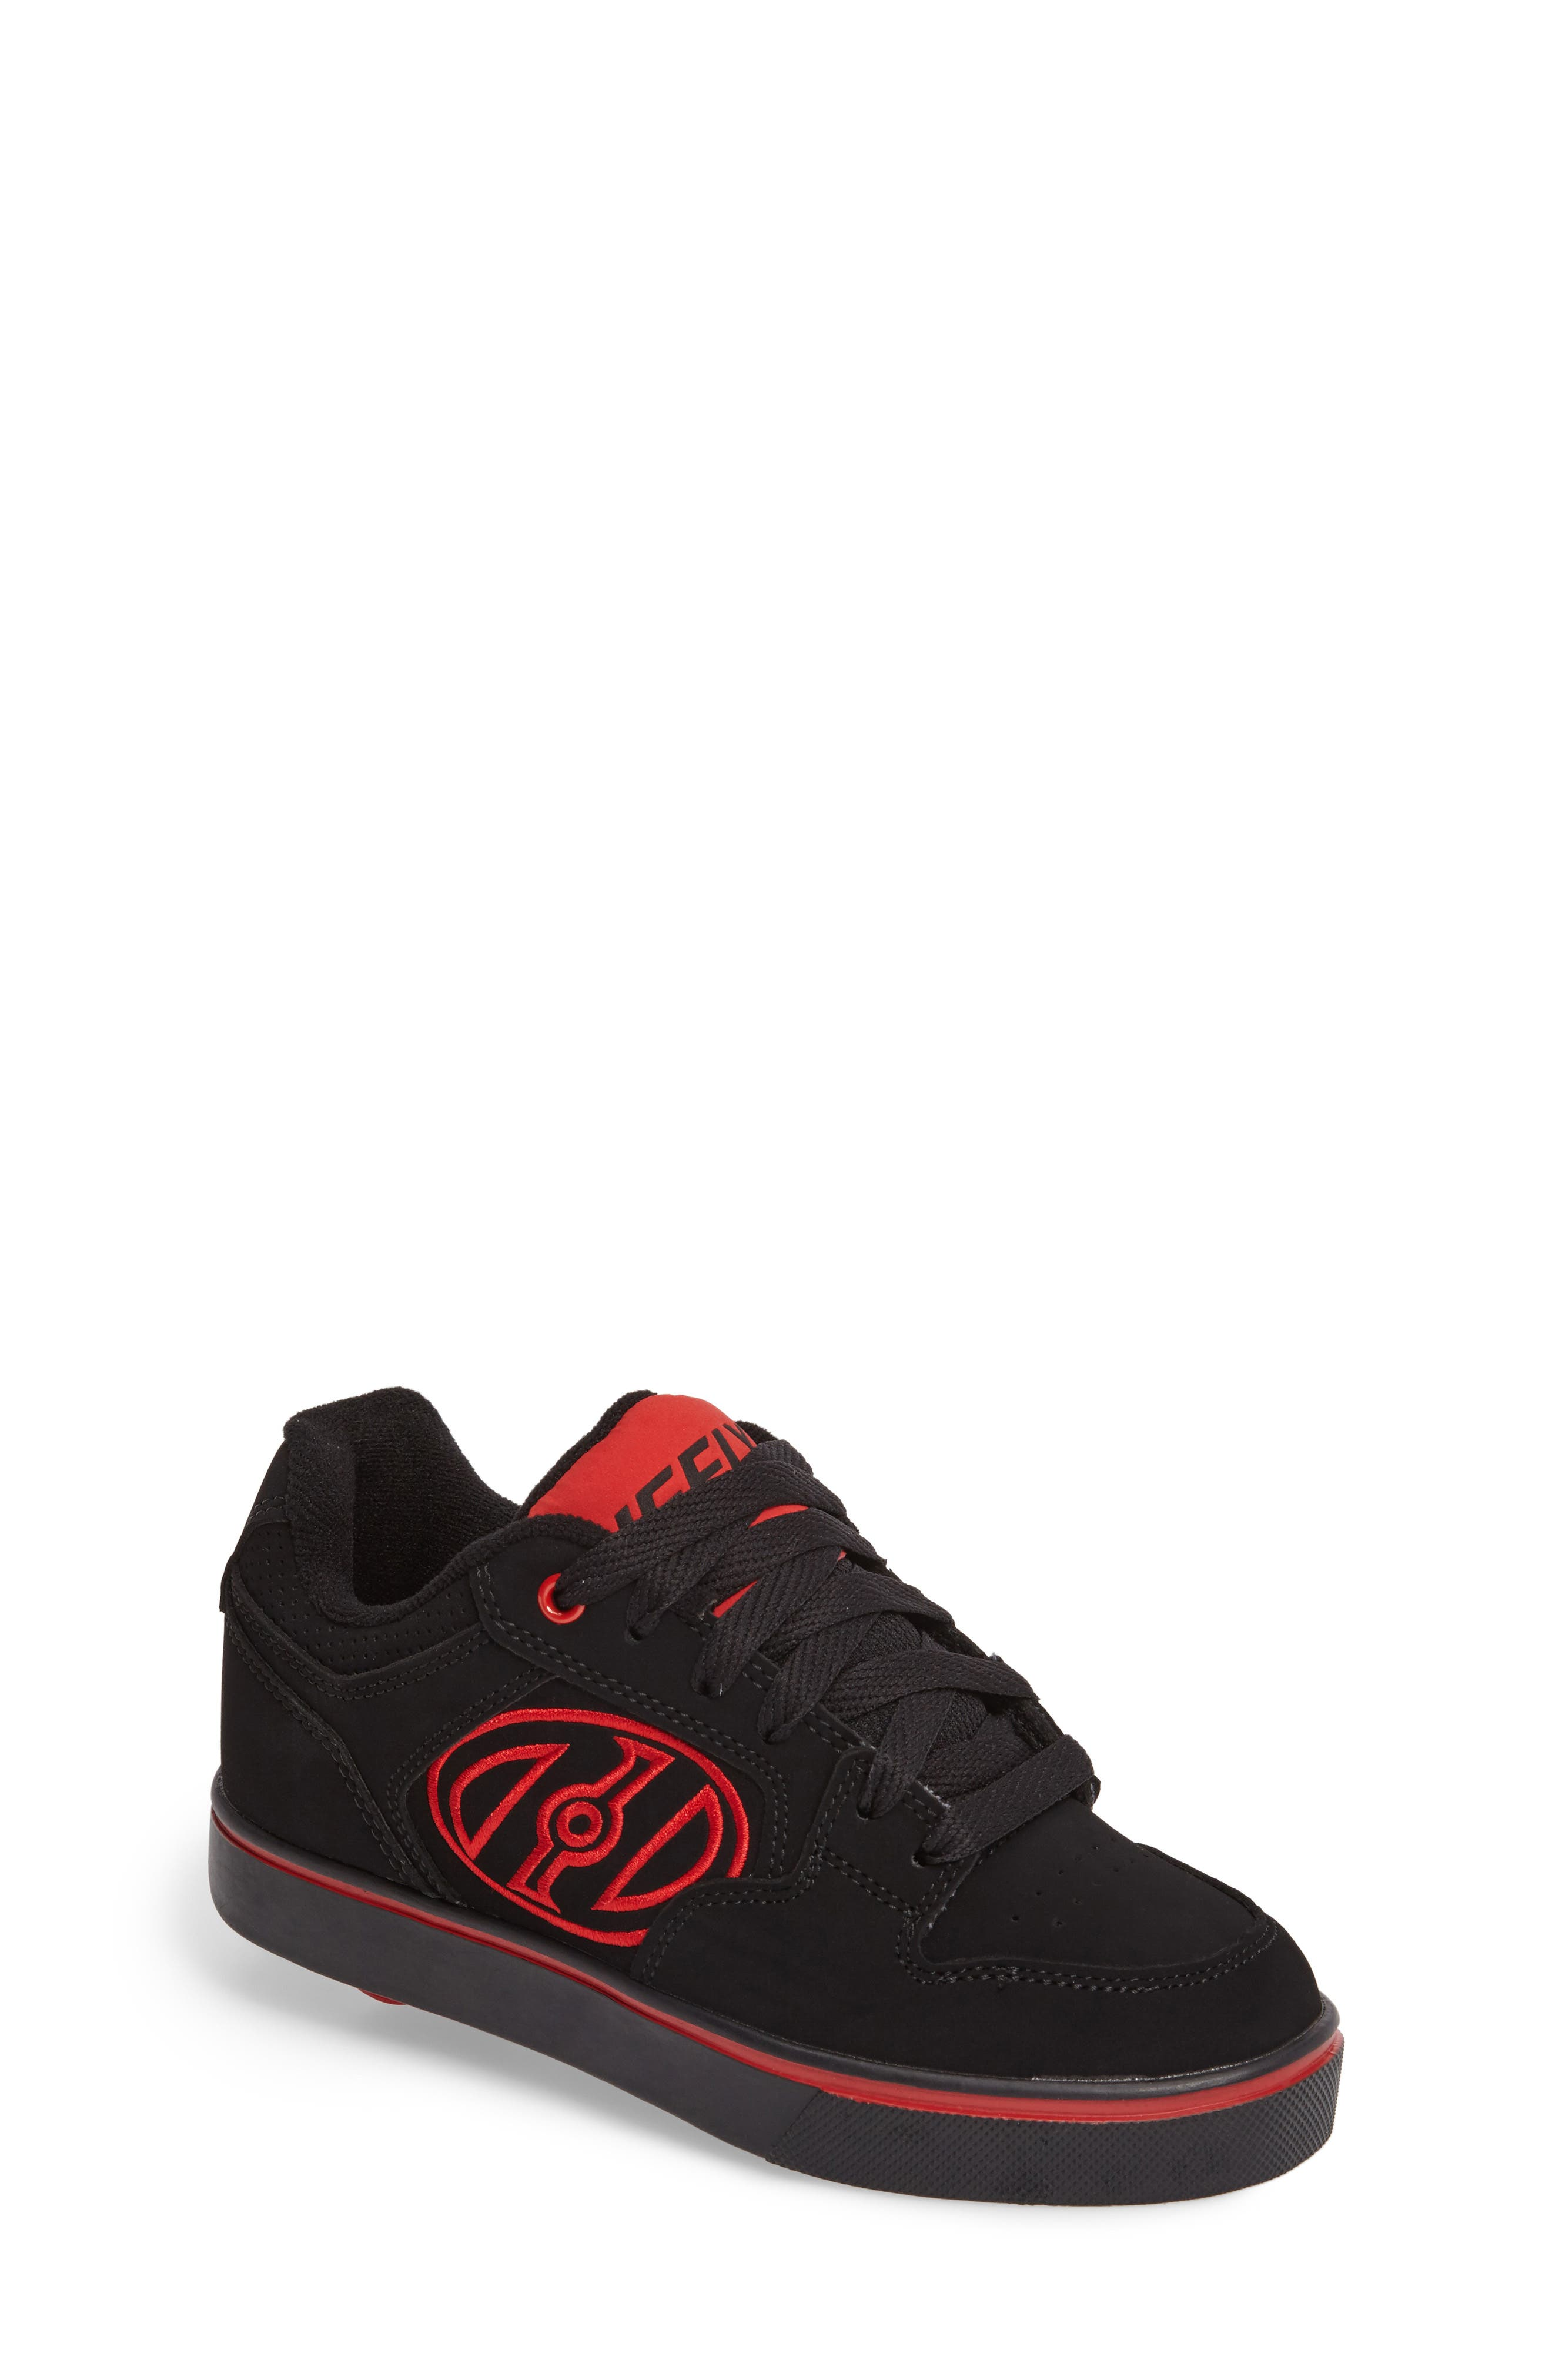 Main Image - Heelys Motion Plus Sneaker (Little Kid & Big Kid)